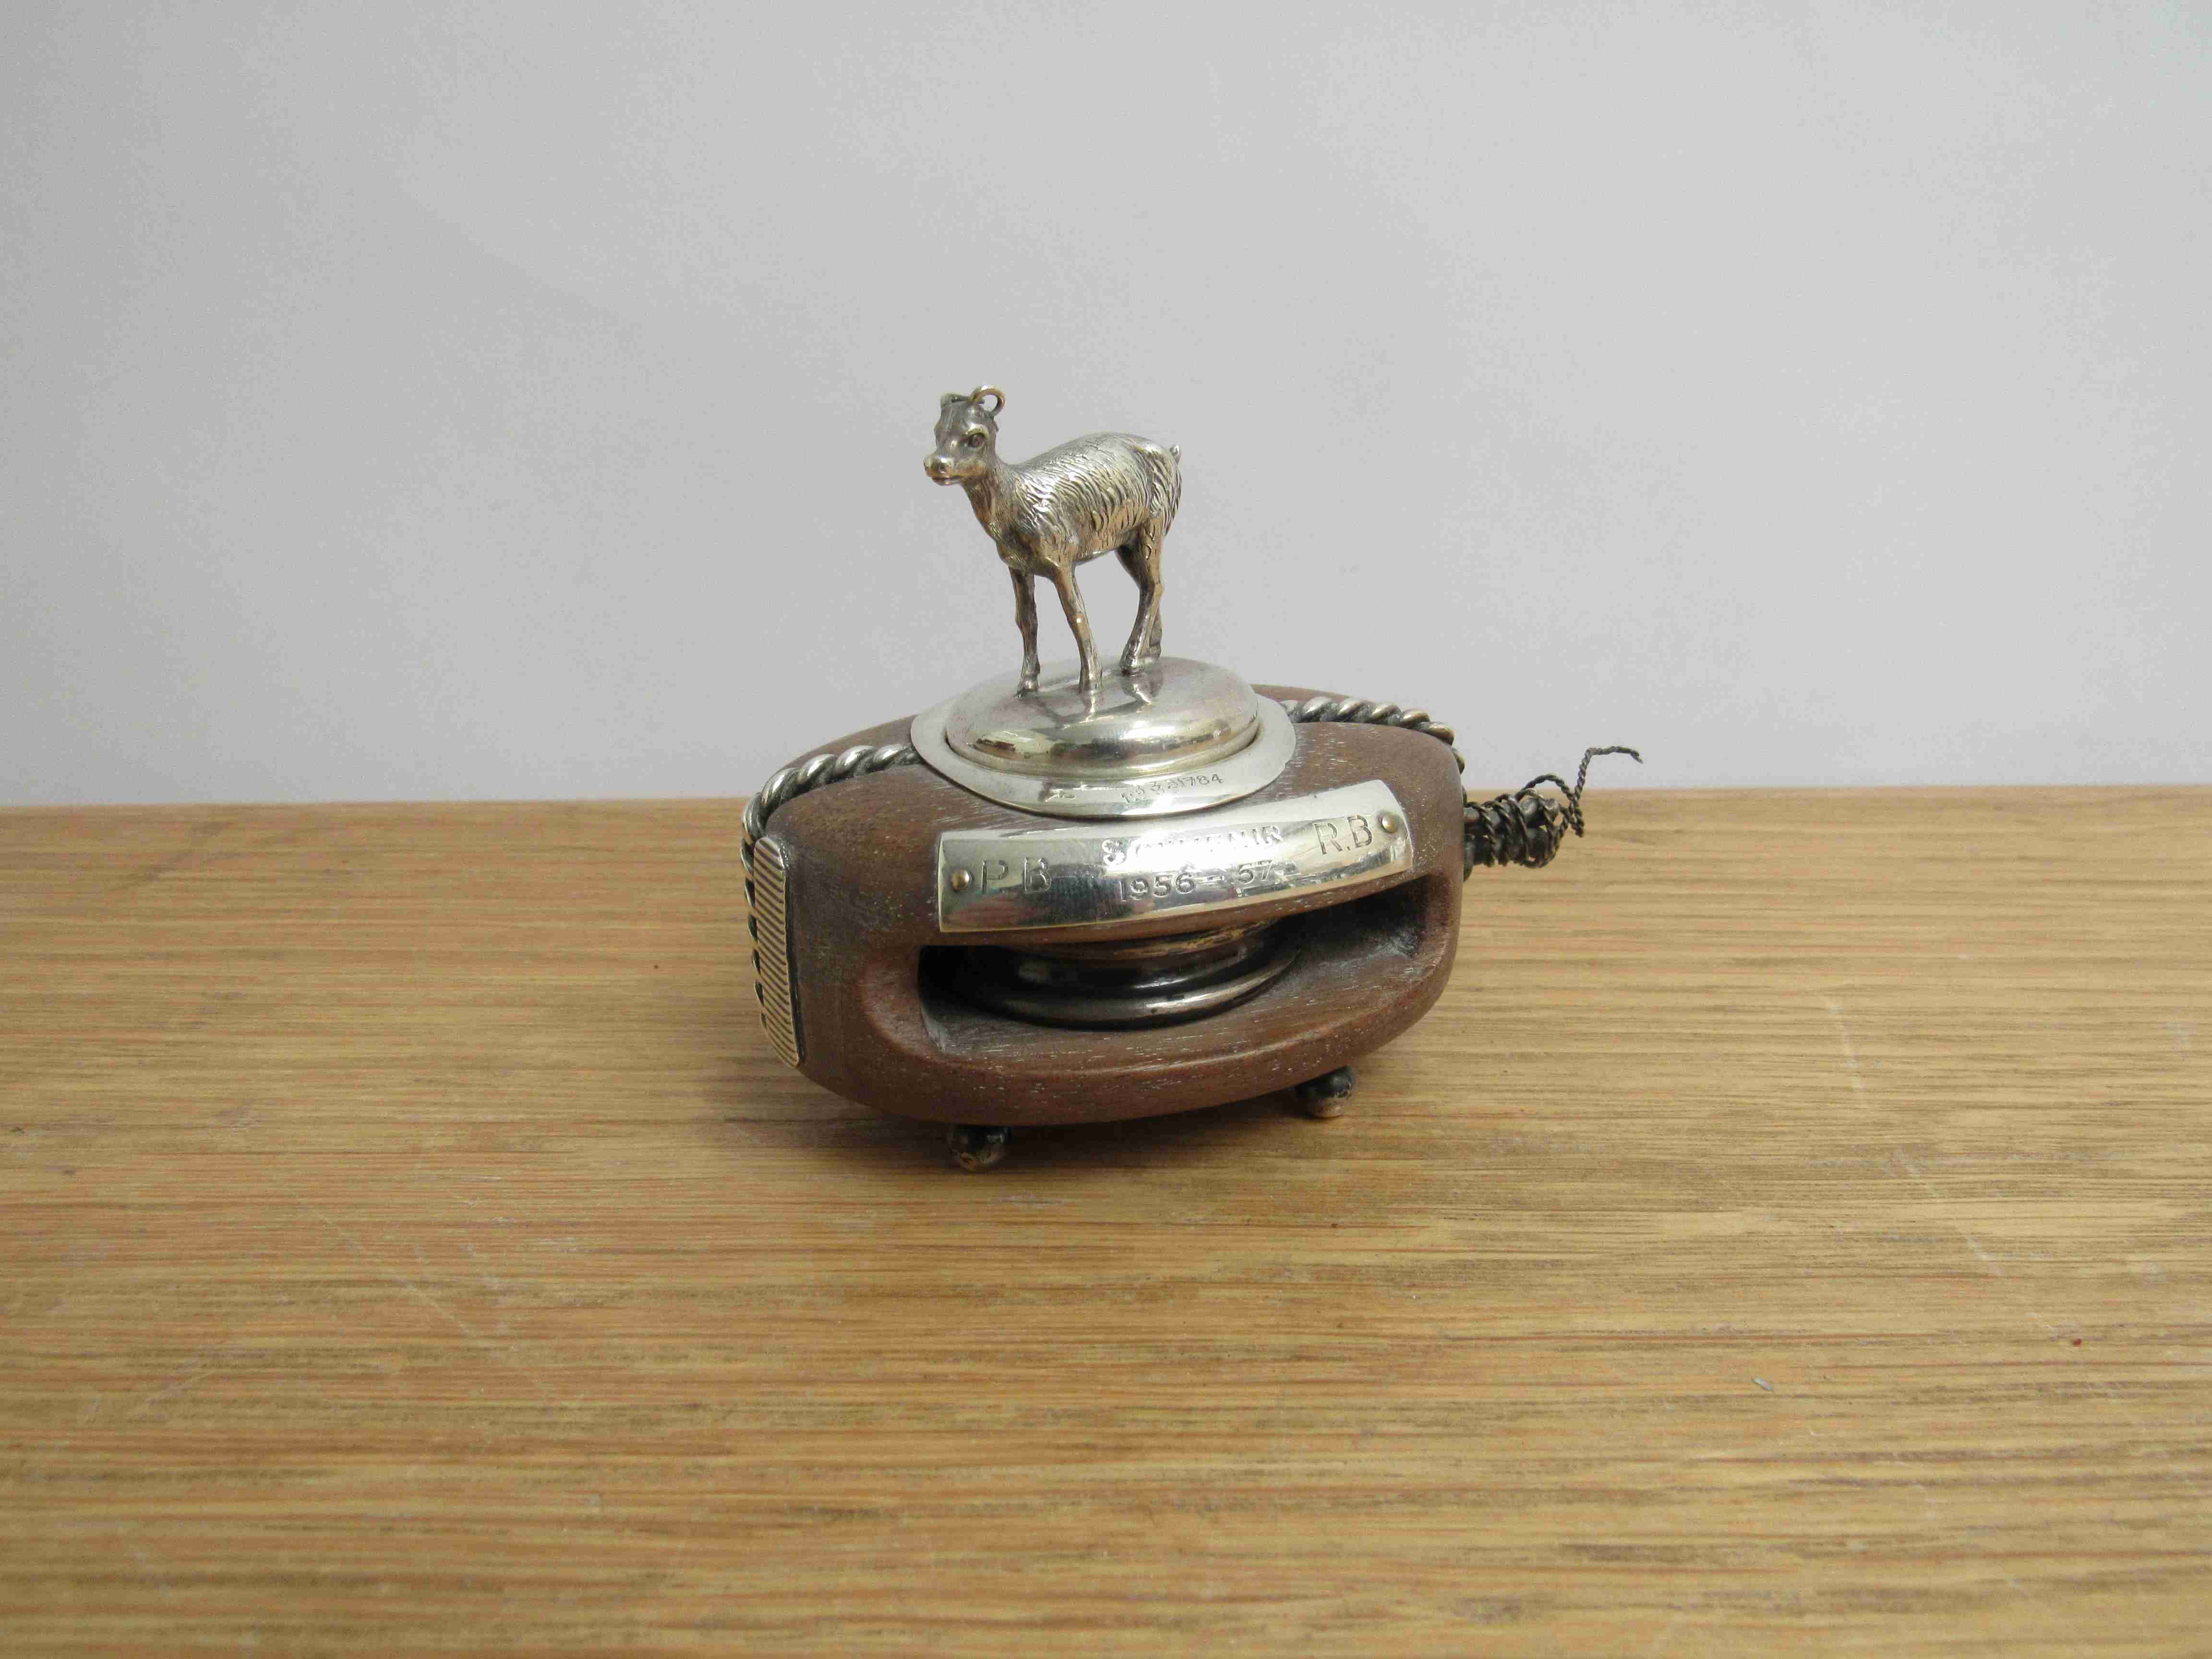 Lot 22 - A Lawrence Emanuel novelty silver mounted hardwood boat pulley - match striker with a deer wine